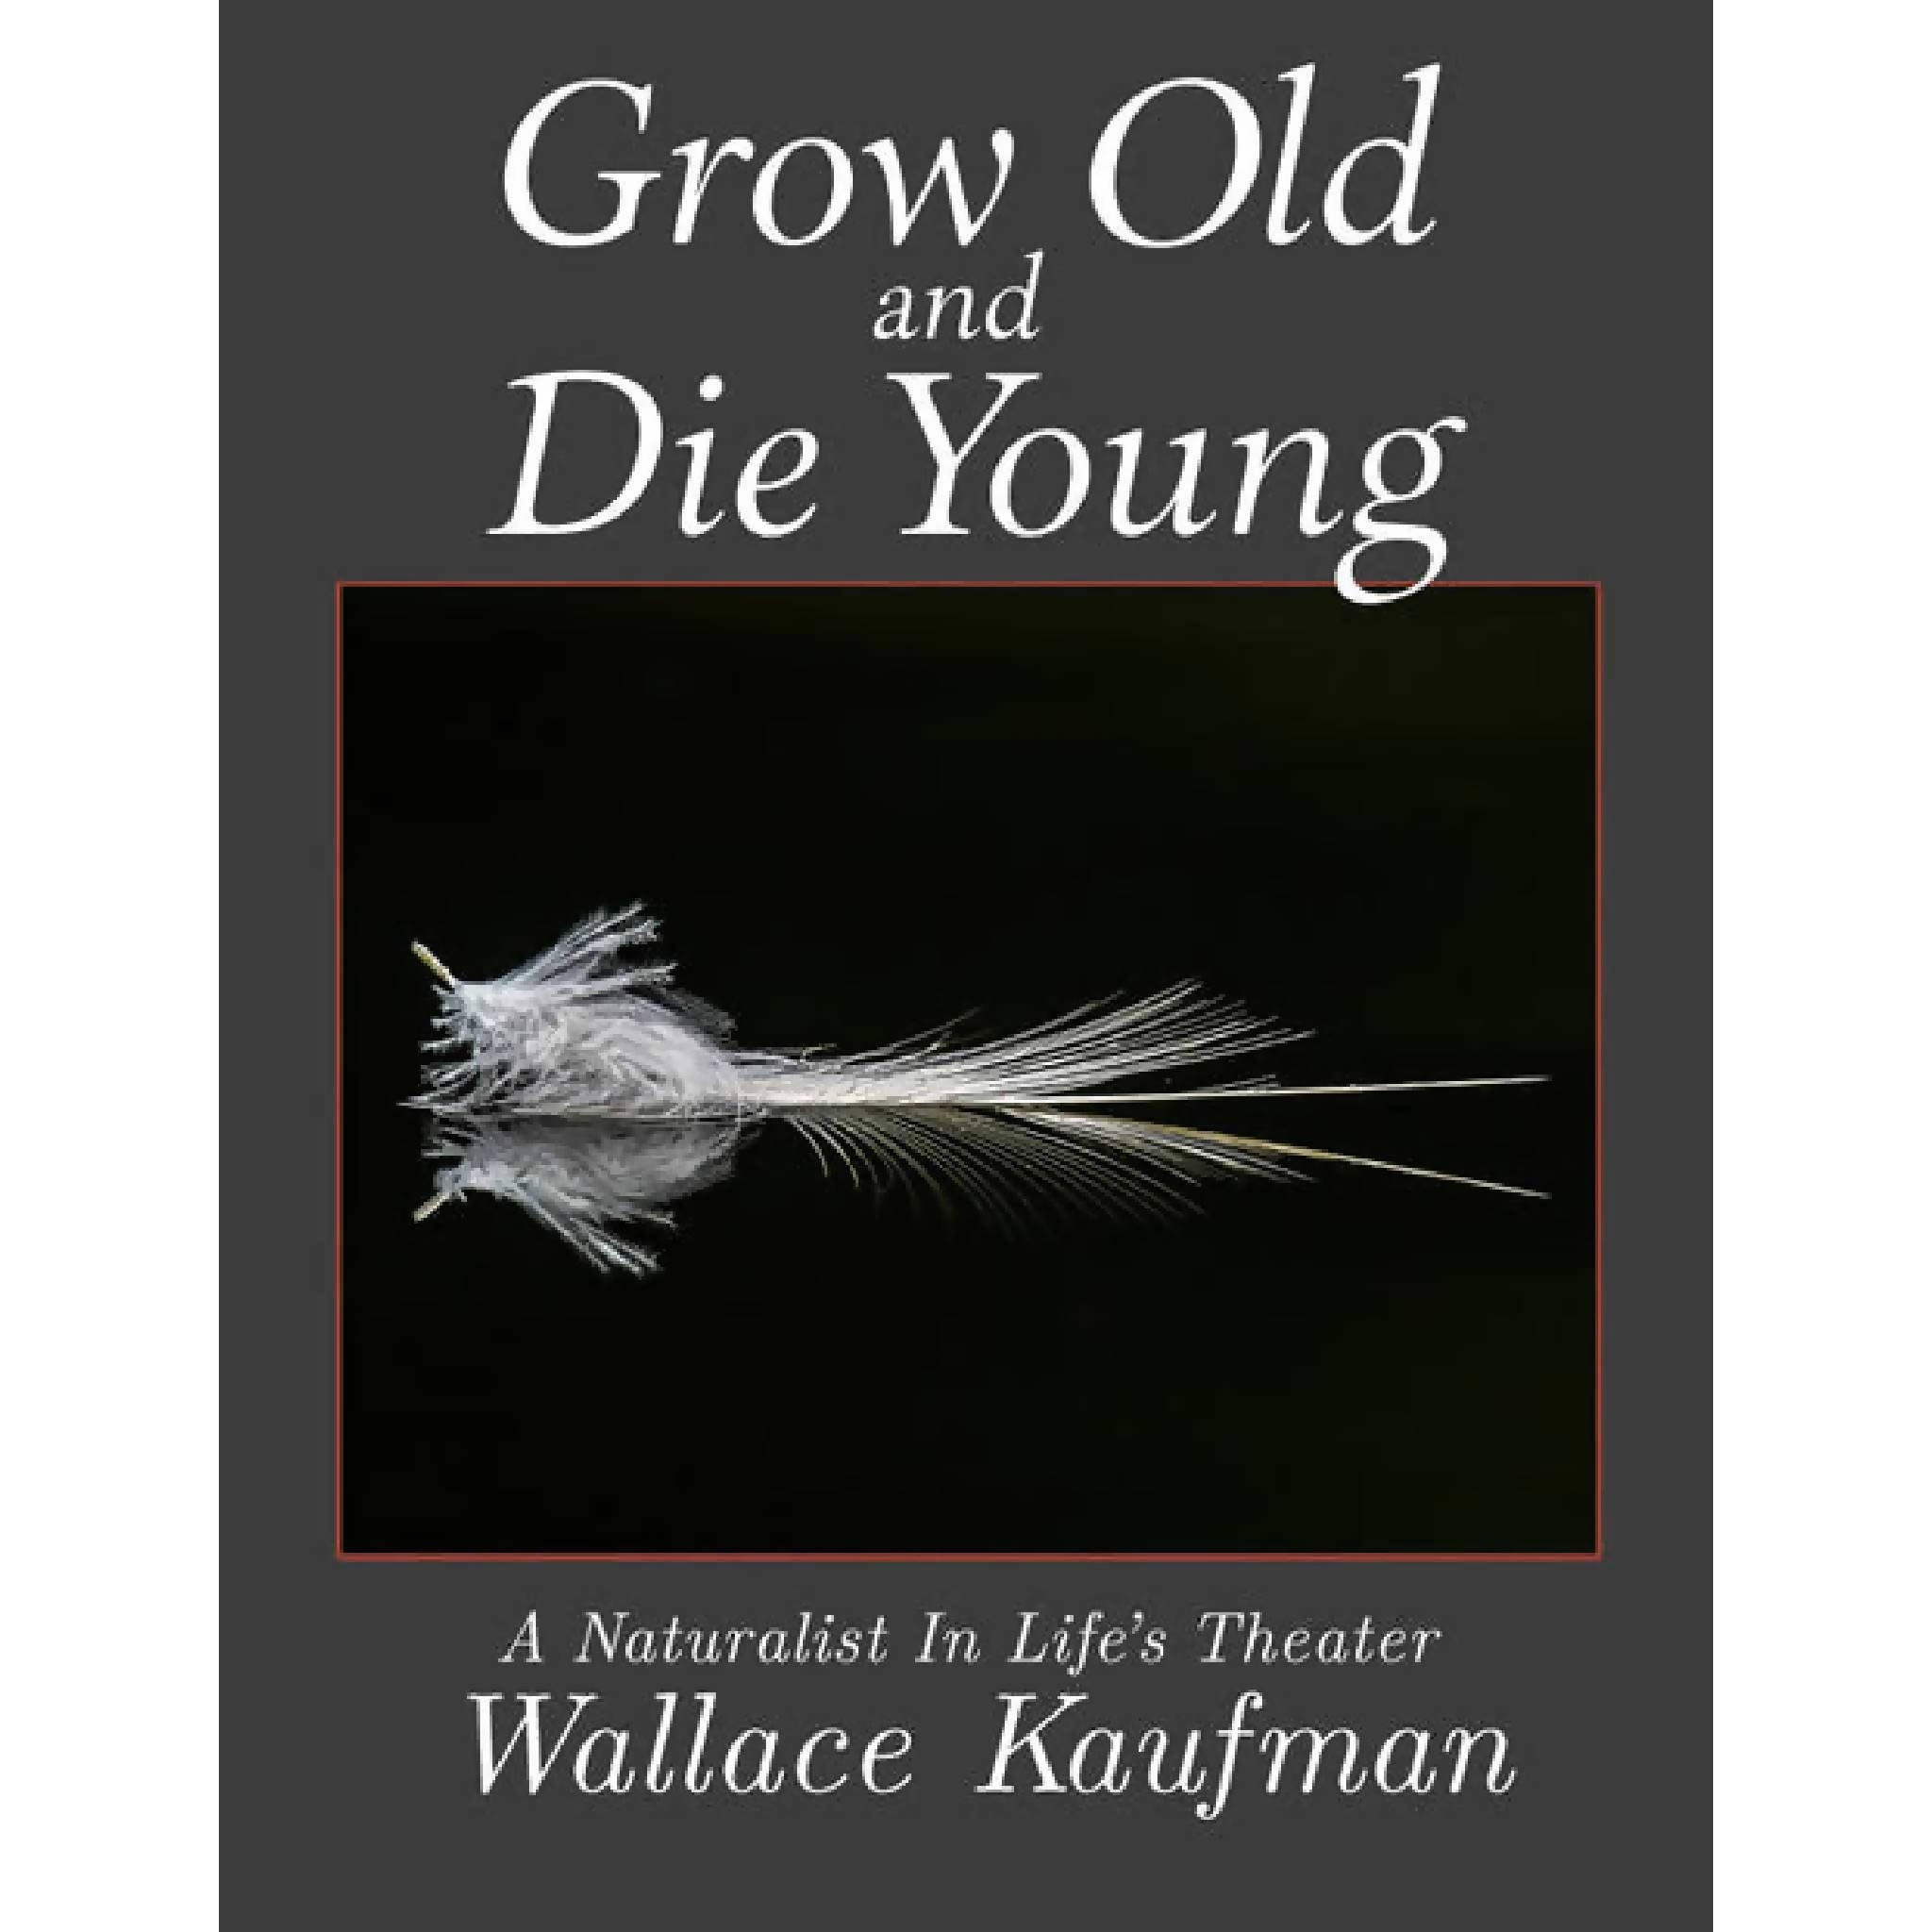 Grow Old And Die Young: A Naturalist In Life's Theater